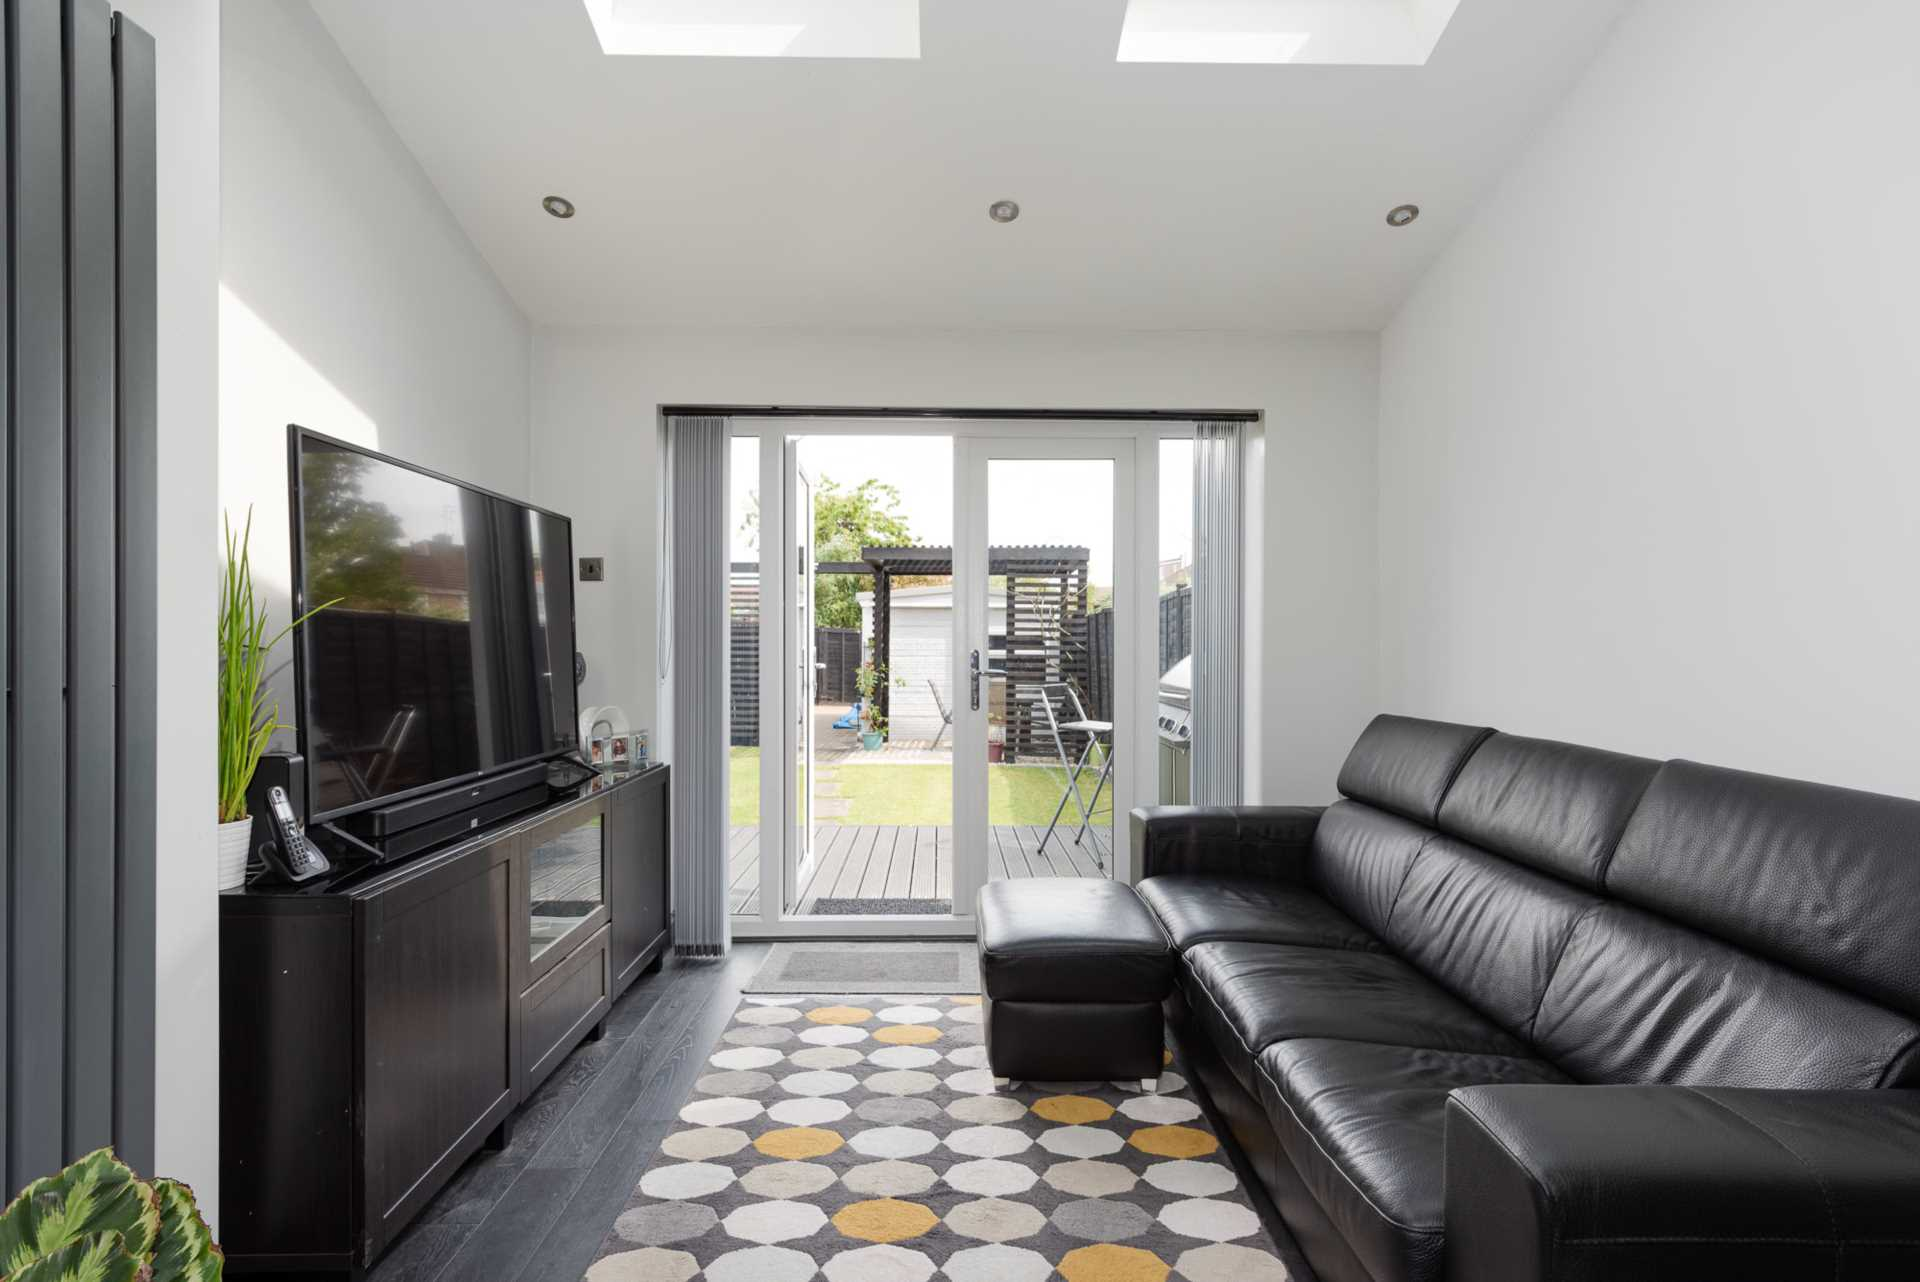 Anchorway Road, Coventry, Image 5